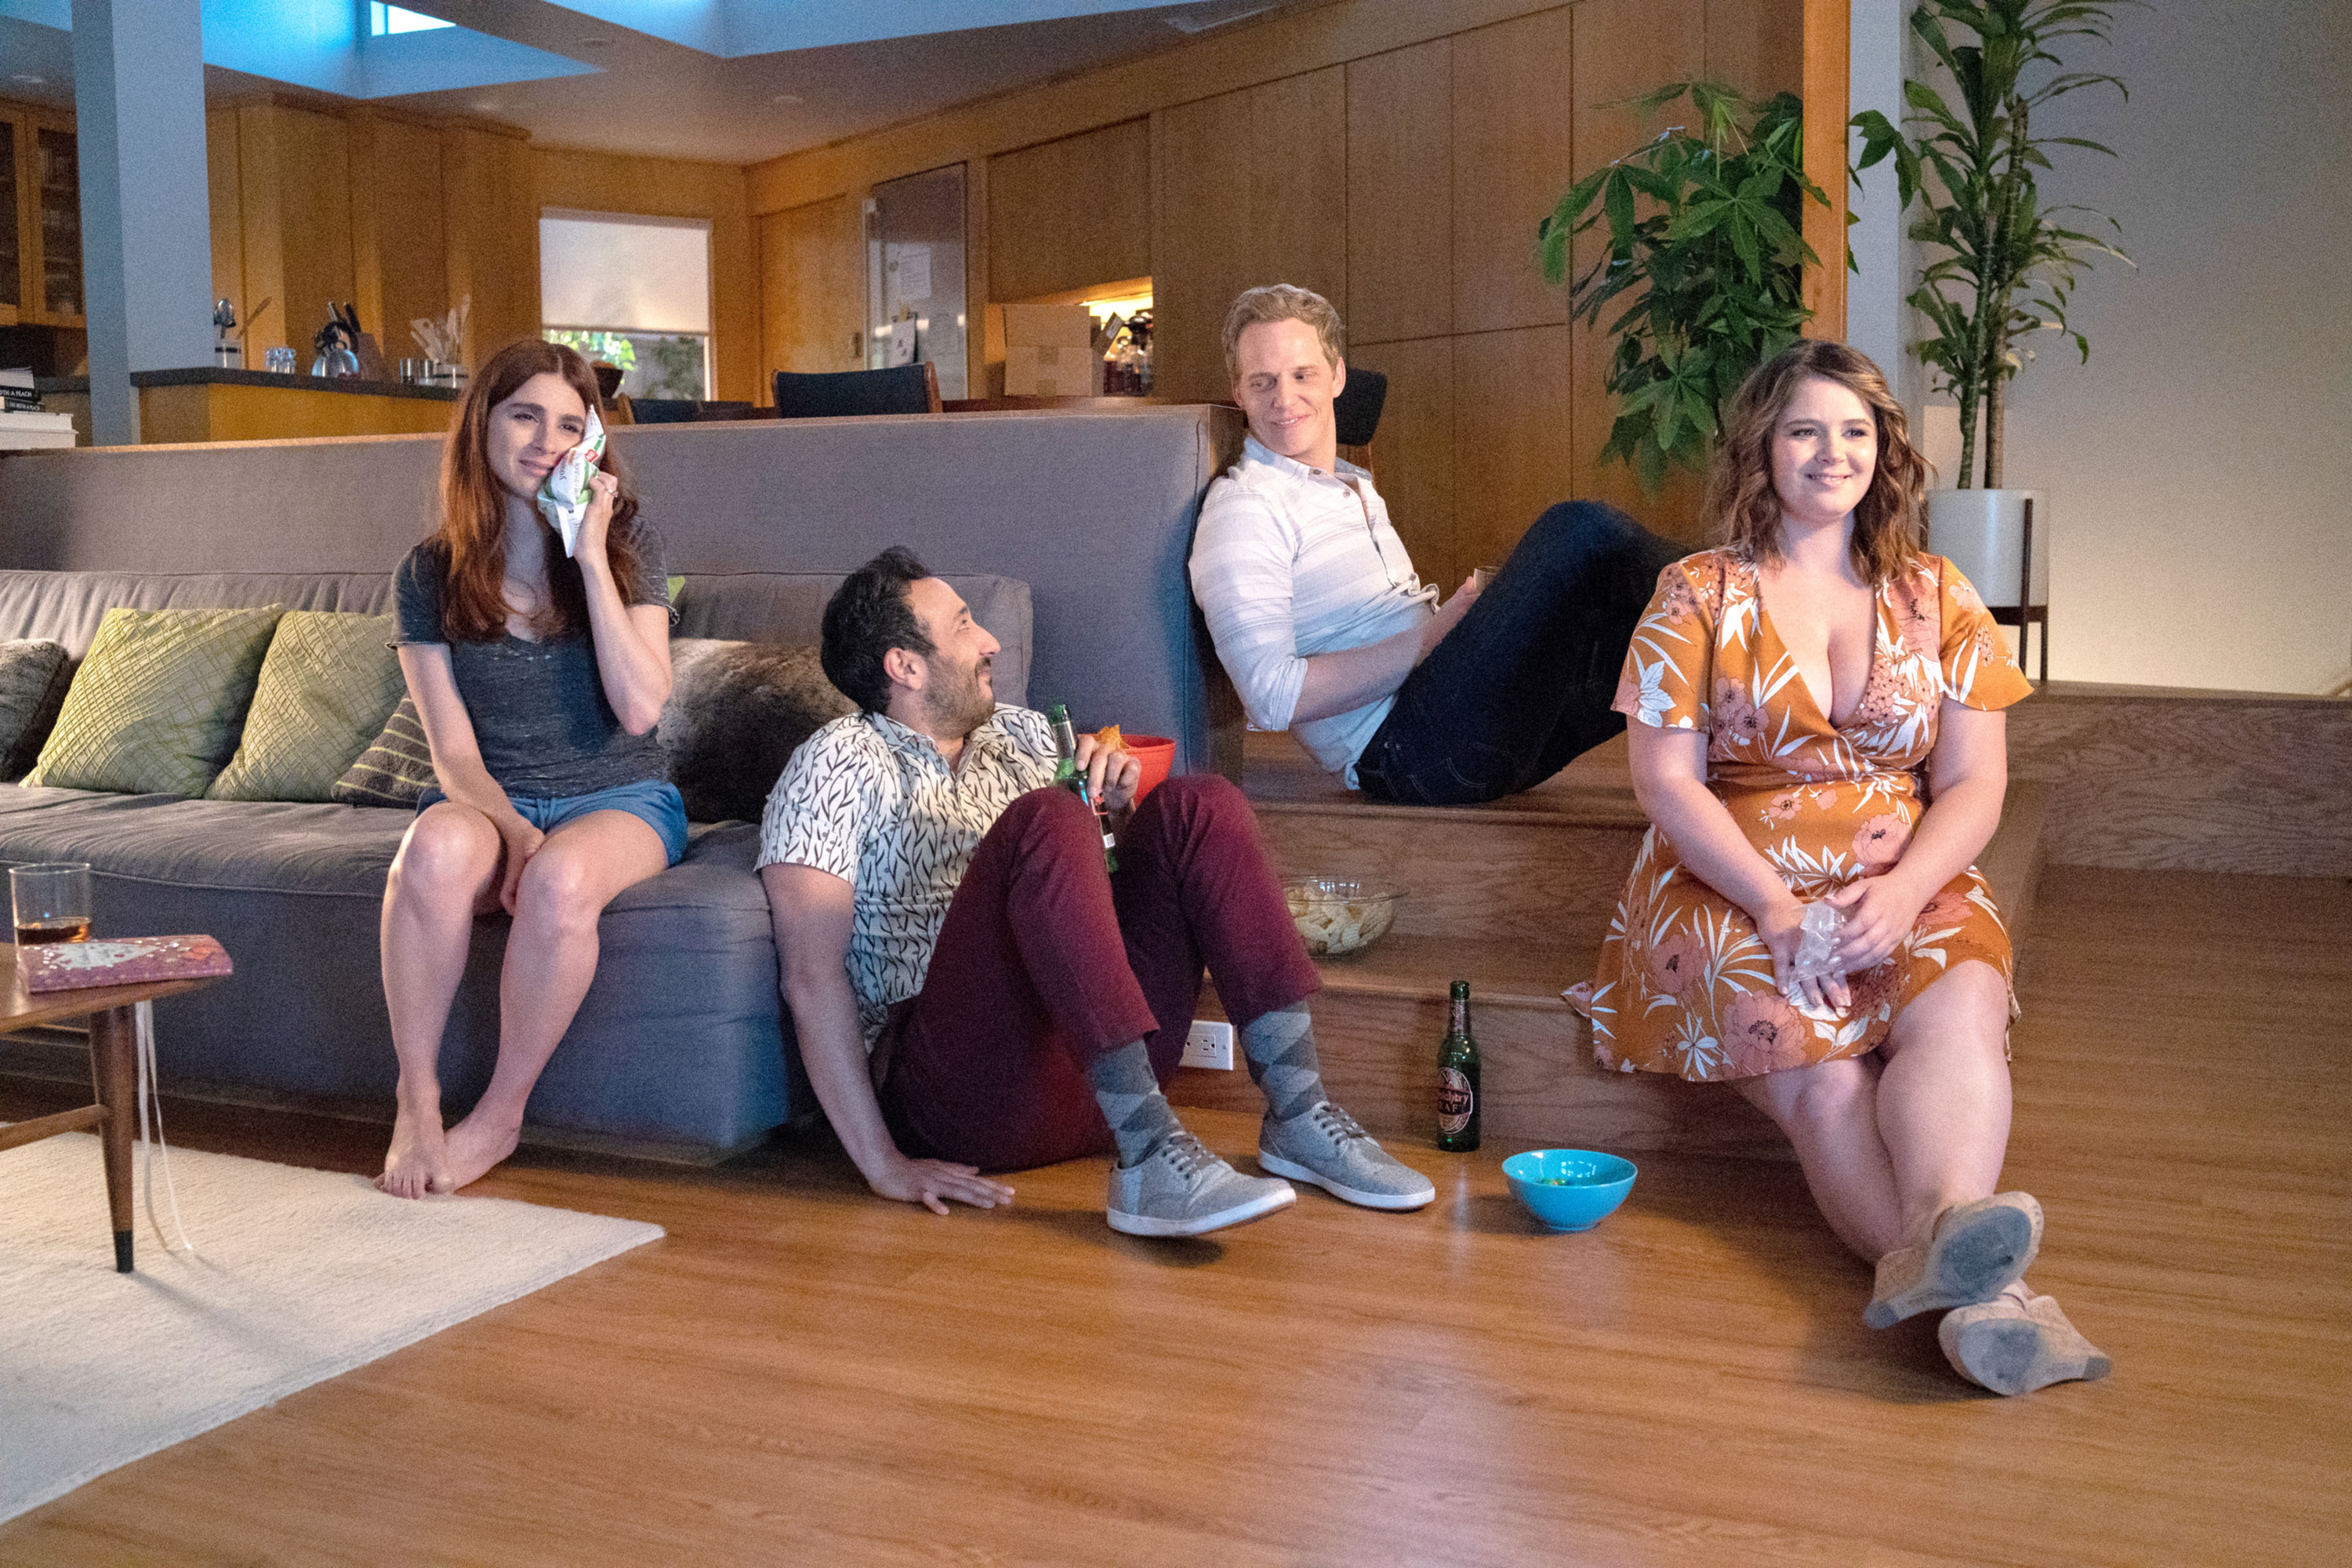 """Aya Cash, Desmin Borges, Chris Geere, and Kether Donohue sitting on the couch and chatting asGretchen,Edgar,Jimmy, and Lindsay on """"You're the Worst"""""""